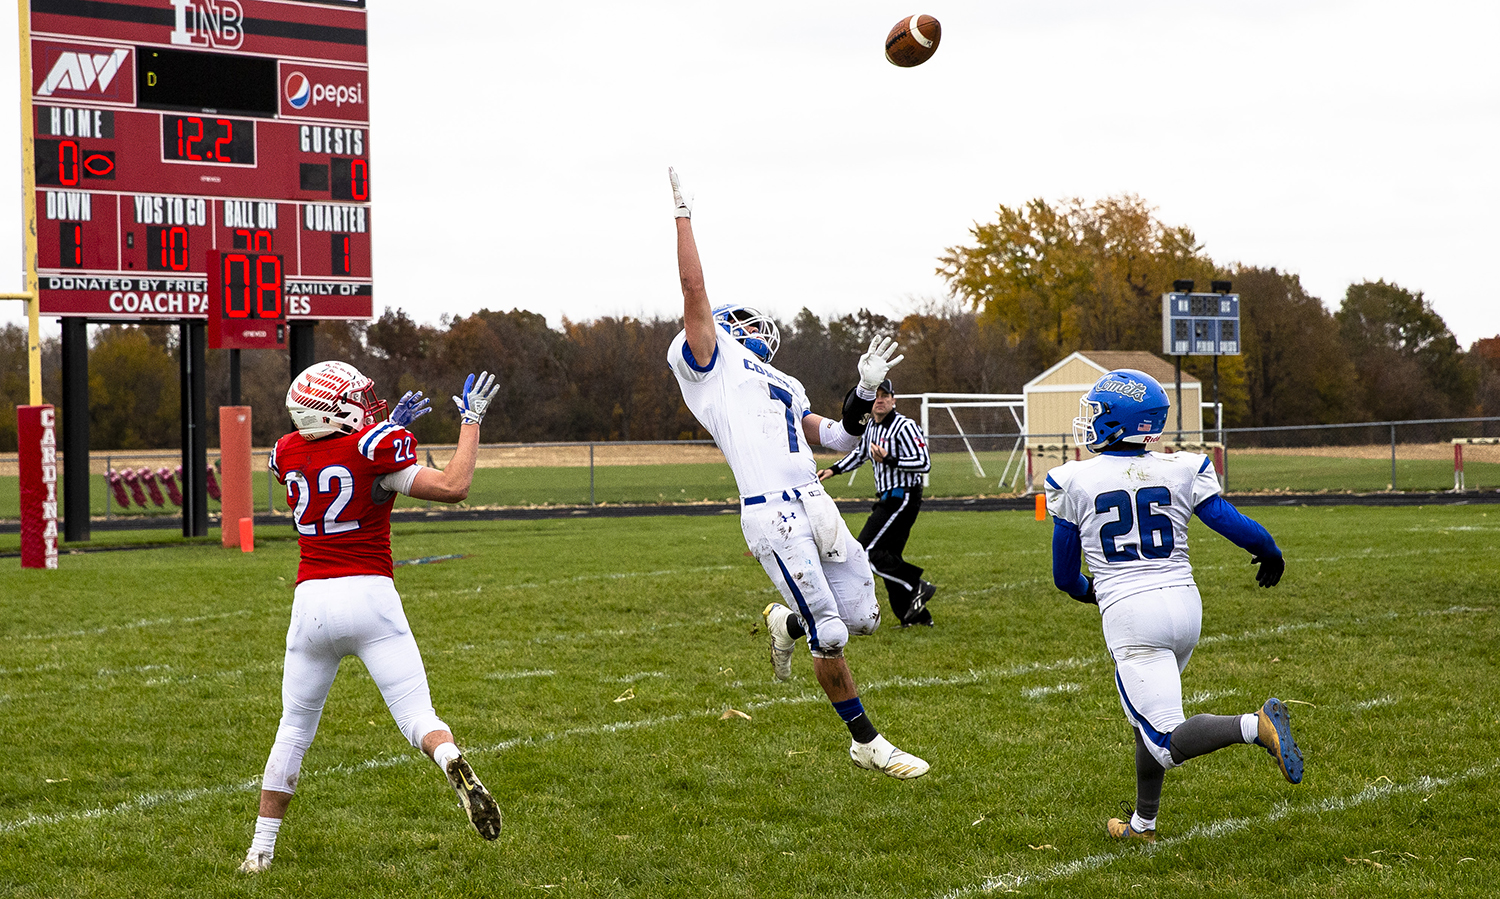 Greenville's Mason Johnson tipped a pass intended for Pleasant Plains' Dakota Sunley during the Class 2A playoff game Saturday, Nov. 3, 2018 at Pleasant Plains High School in Pleasant Plains, Ill. [Rich Saal/The State Journal-Register]